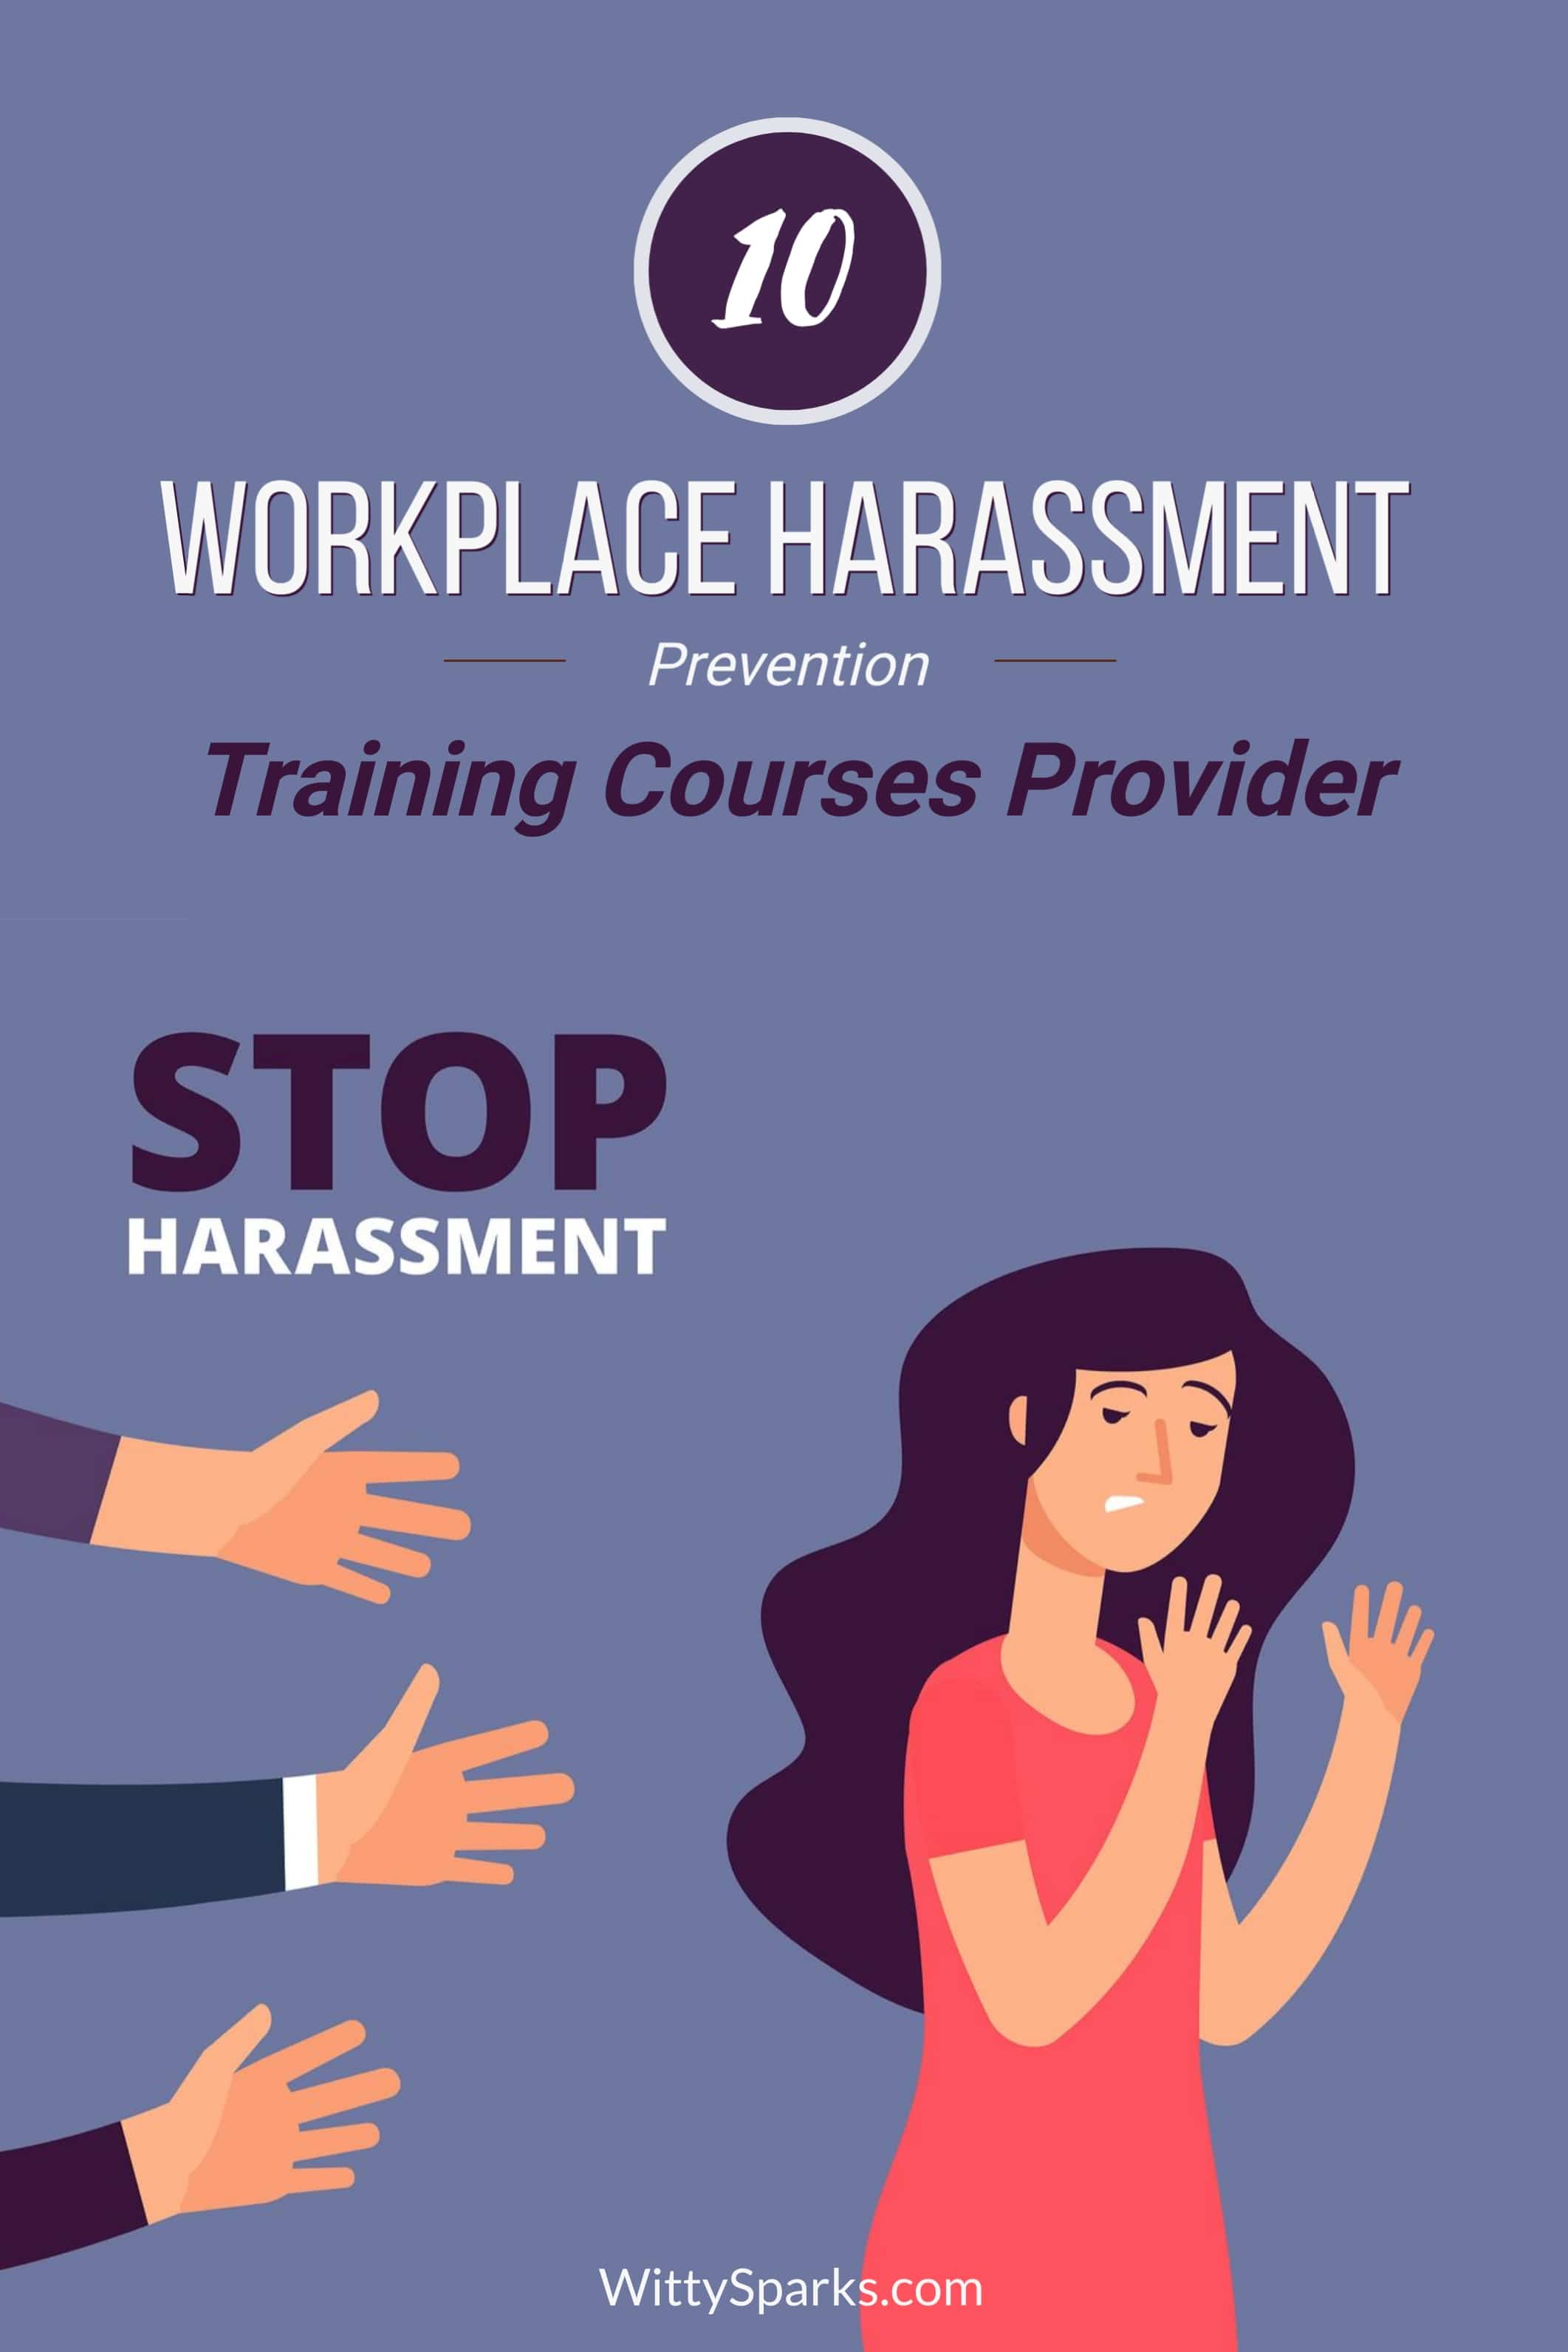 Workplace sexual harassment training courses